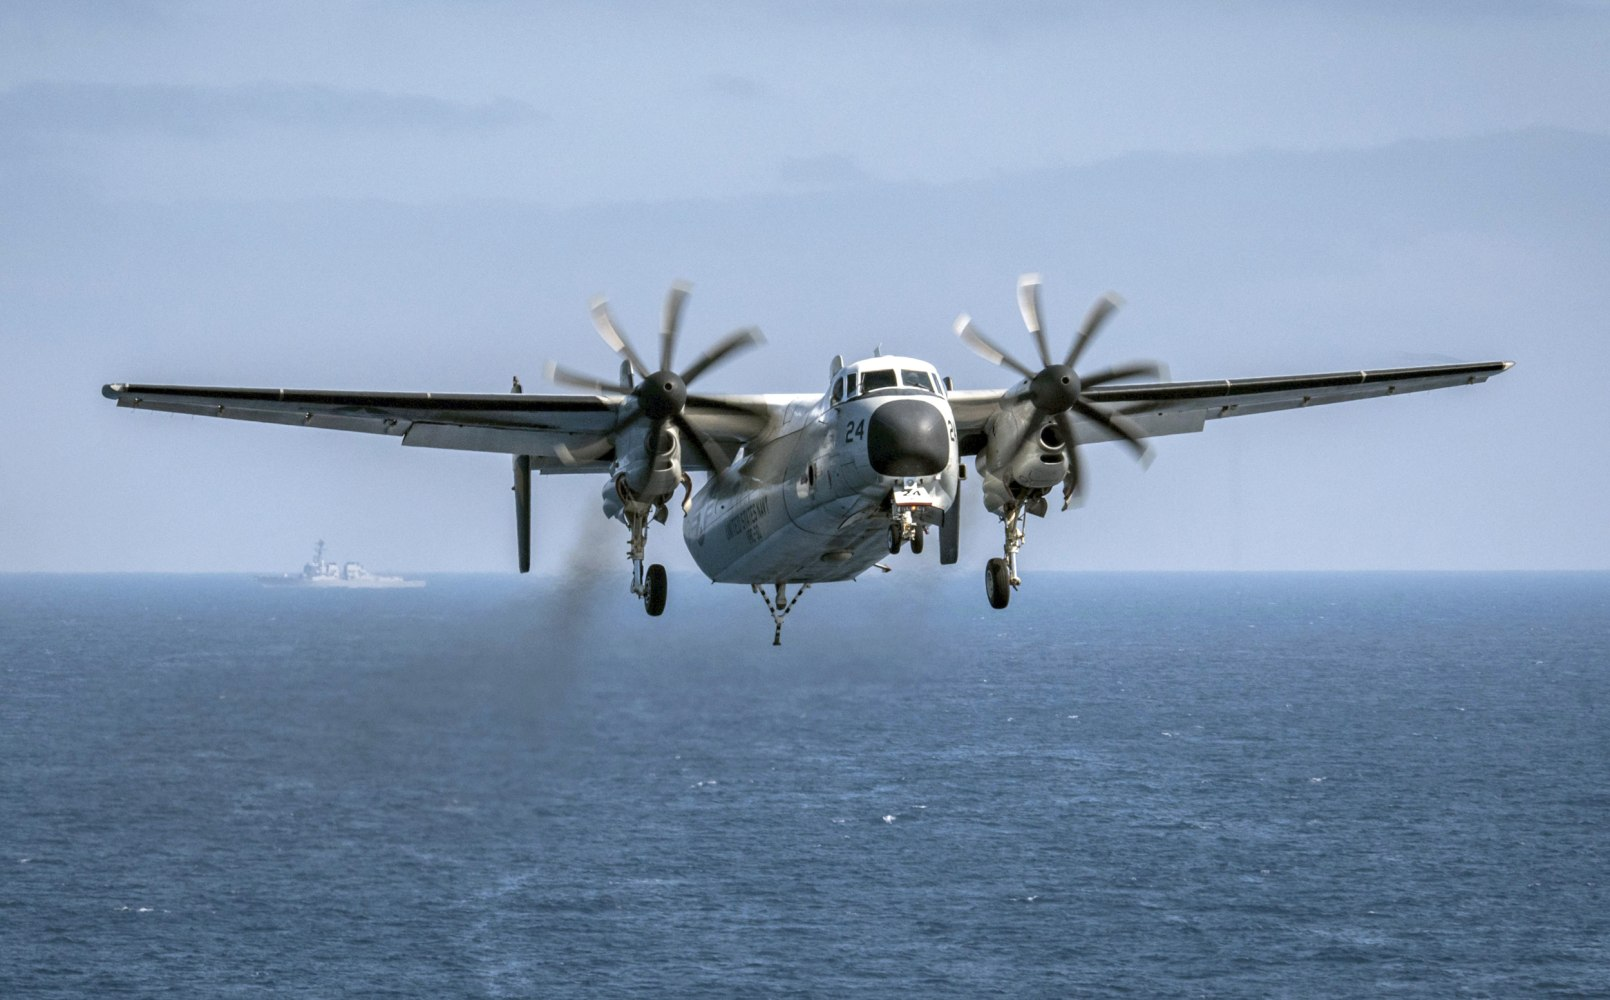 Navy finds plane that crashed, killing 3, on Pacific seabed